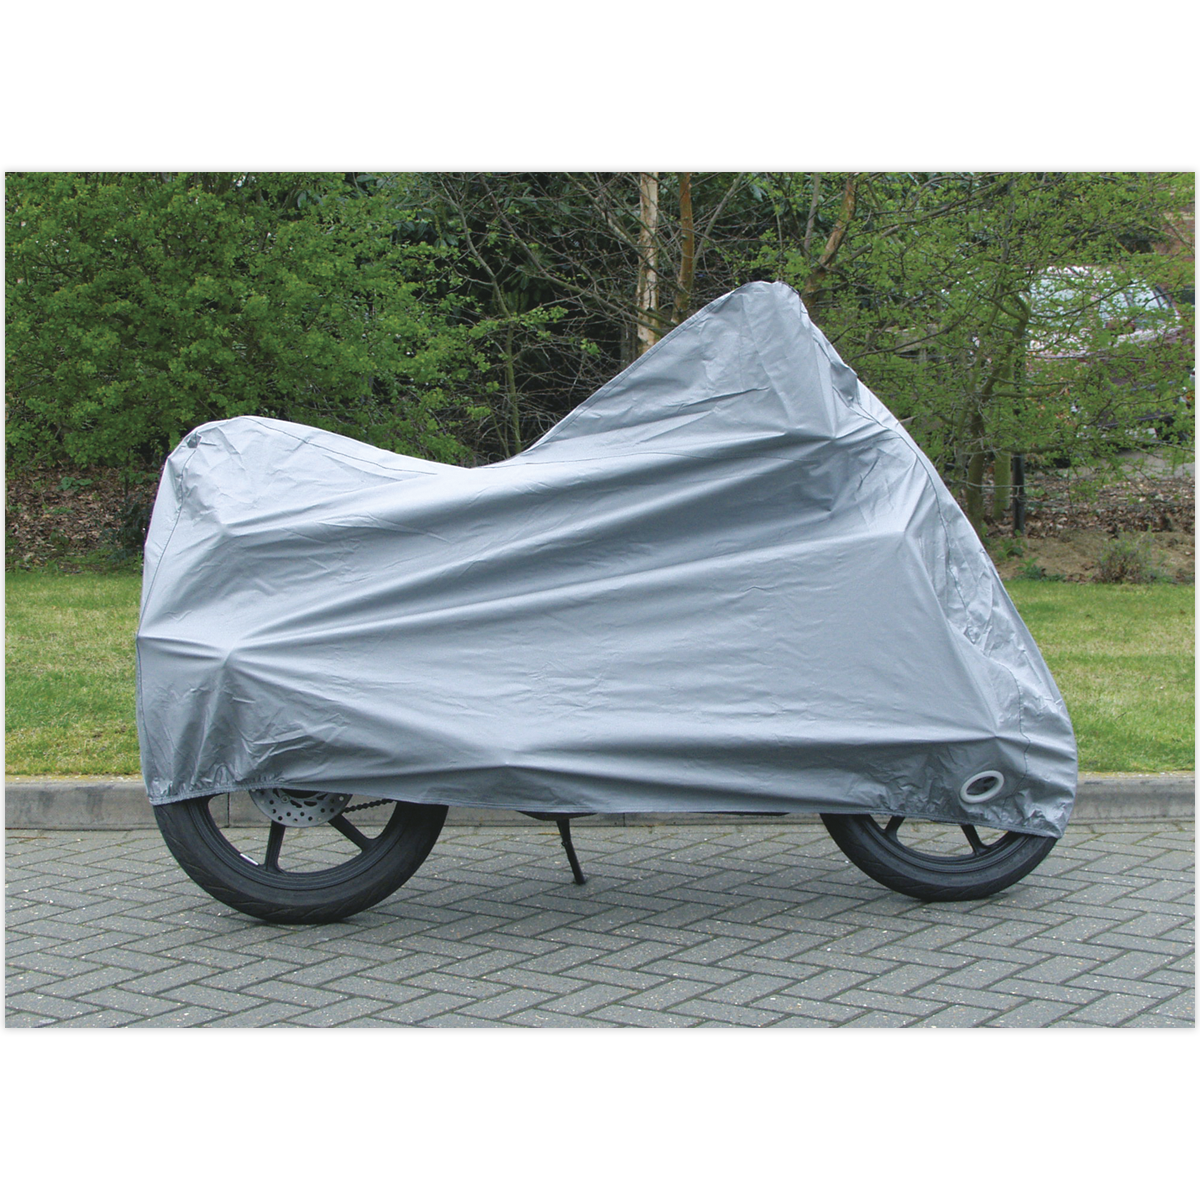 Motorcycle Cover Large 2460 x 1050 x 1370mm